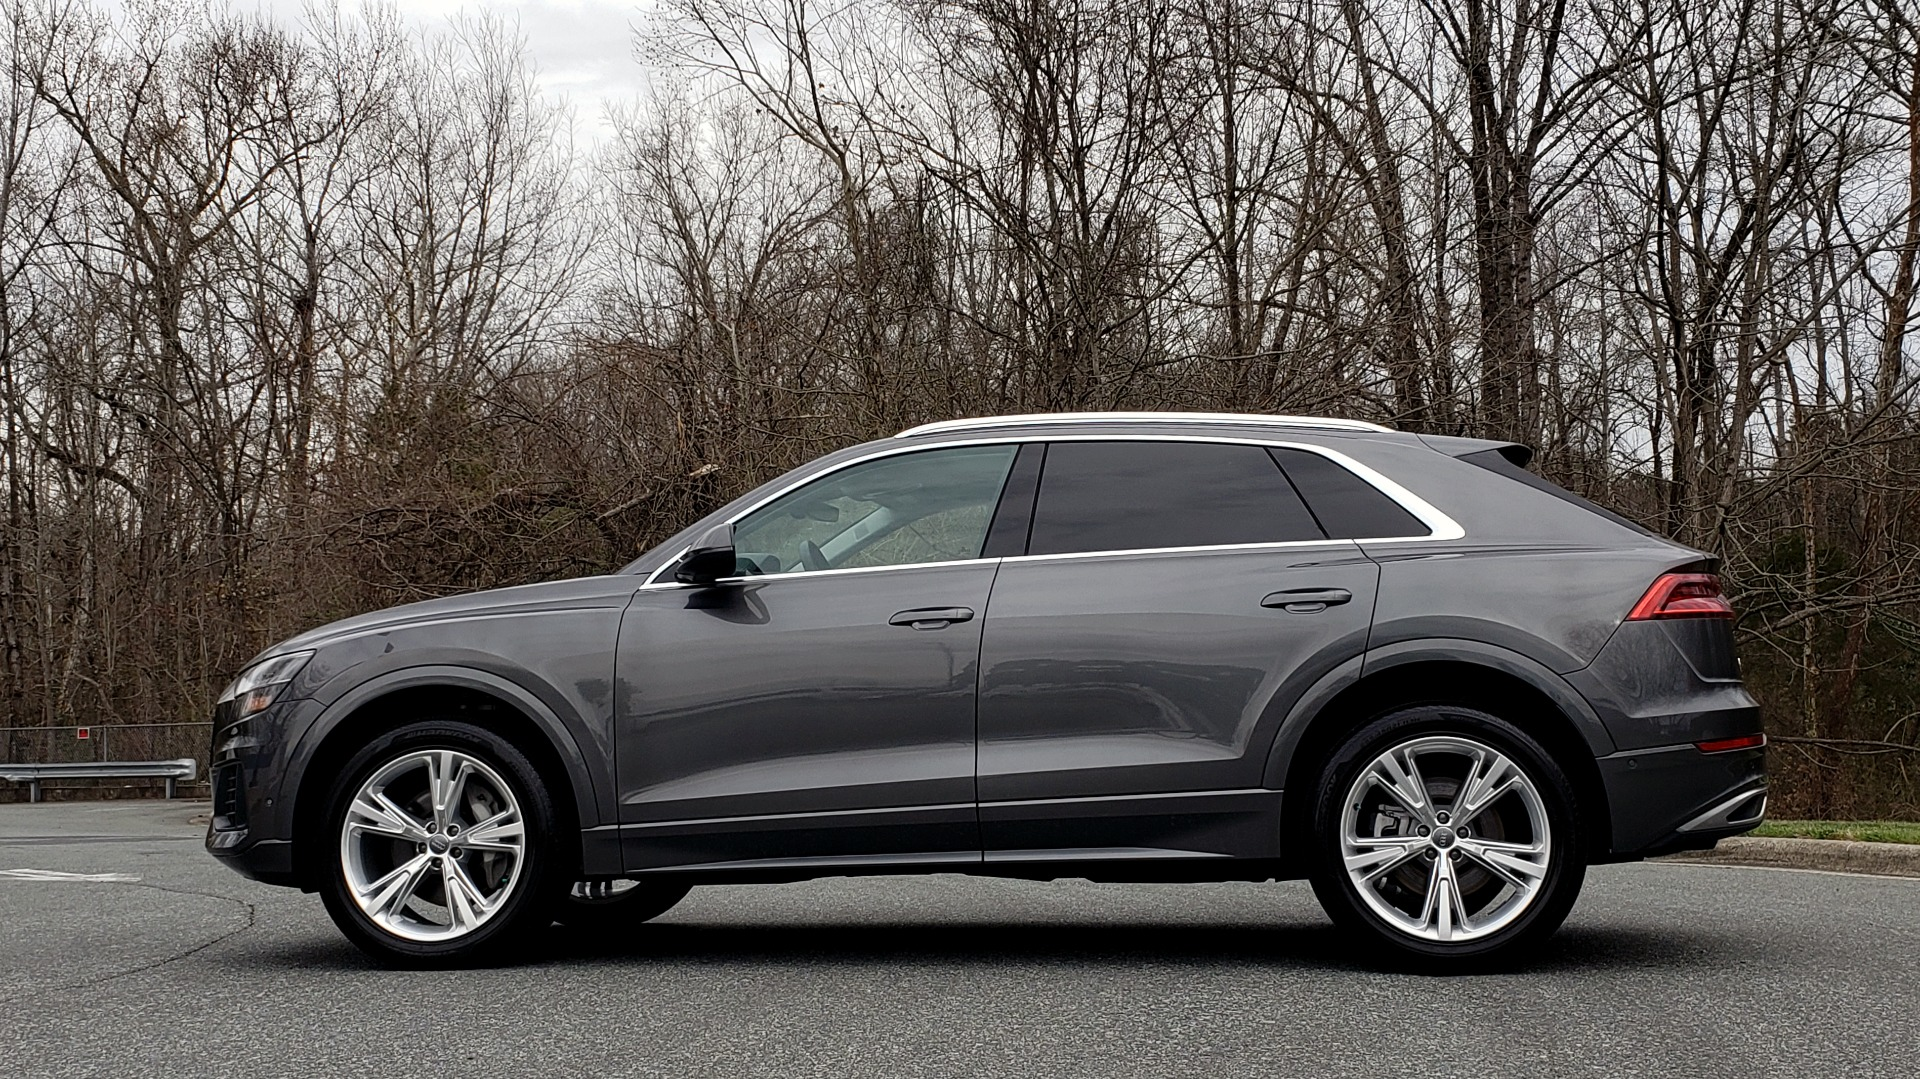 Used 2019 Audi Q8 PRESTIGE 3.0 / NAV / SUNROOF / BO SND / COLD WTHR / REARVIEW for sale Sold at Formula Imports in Charlotte NC 28227 2